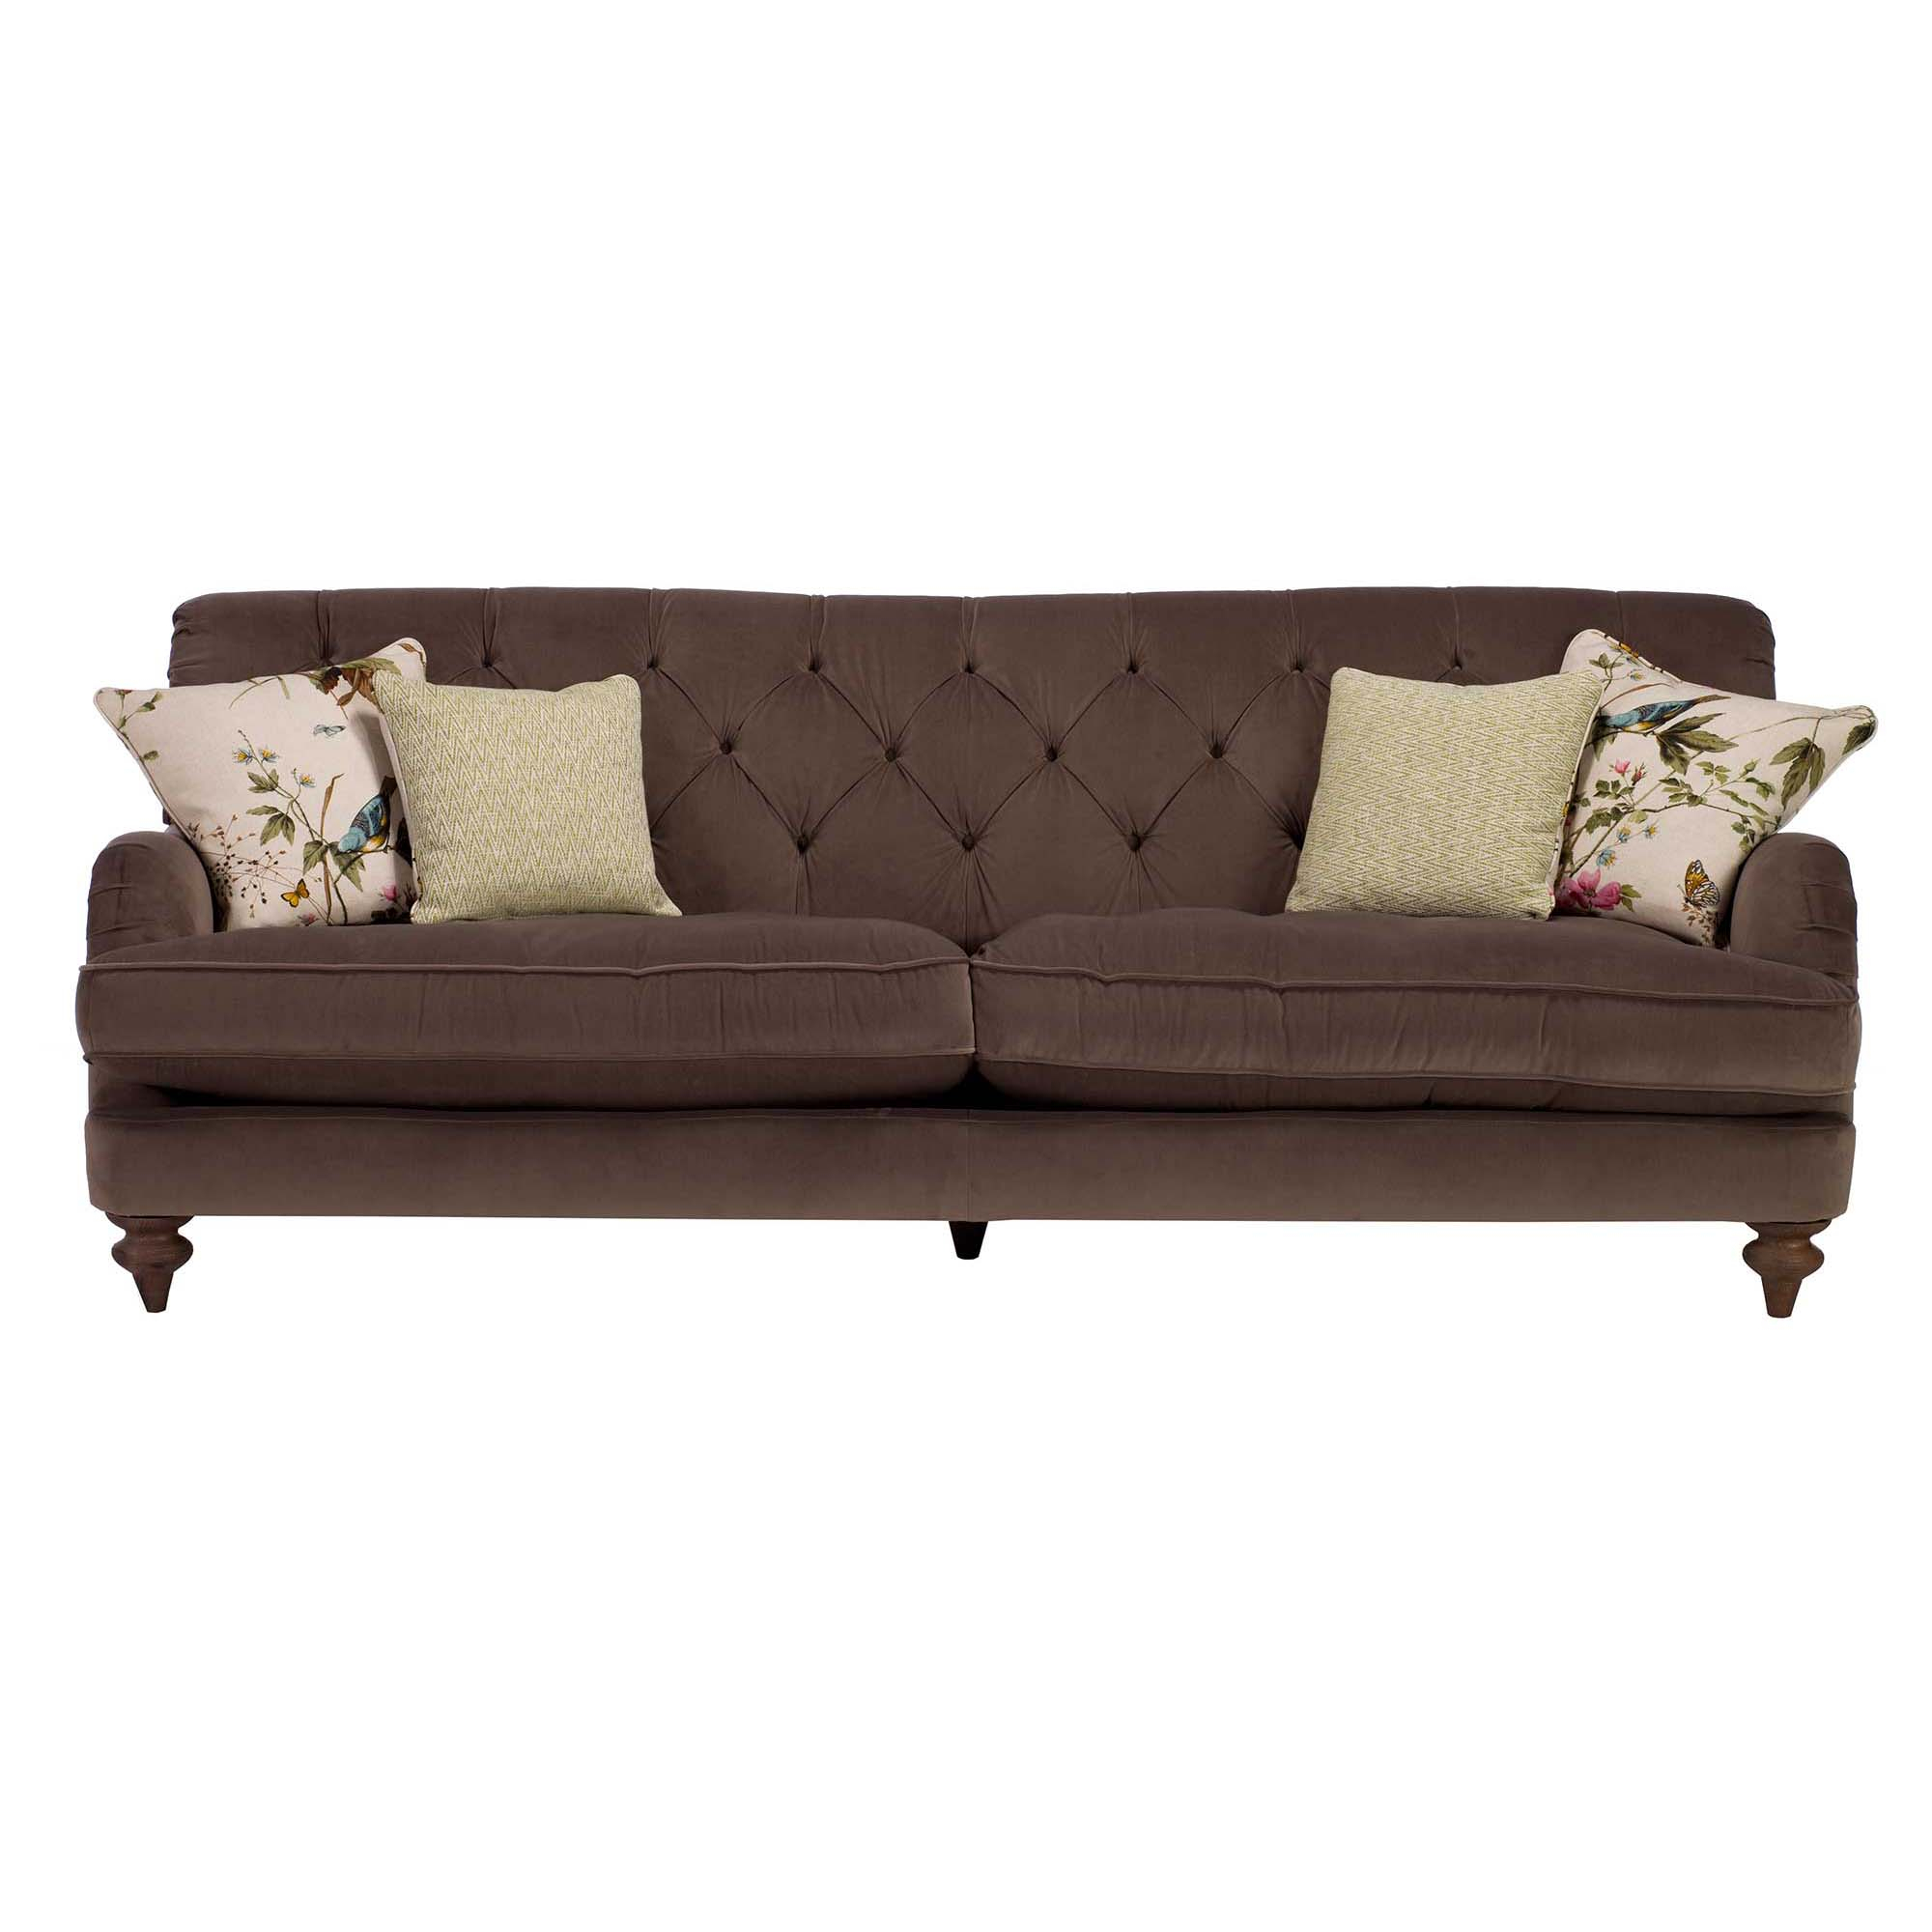 Windermere Extra Large Sofa | Sofas | Living Room Intended For Mercer Foam Oversized Sofa Chairs (Image 25 of 25)